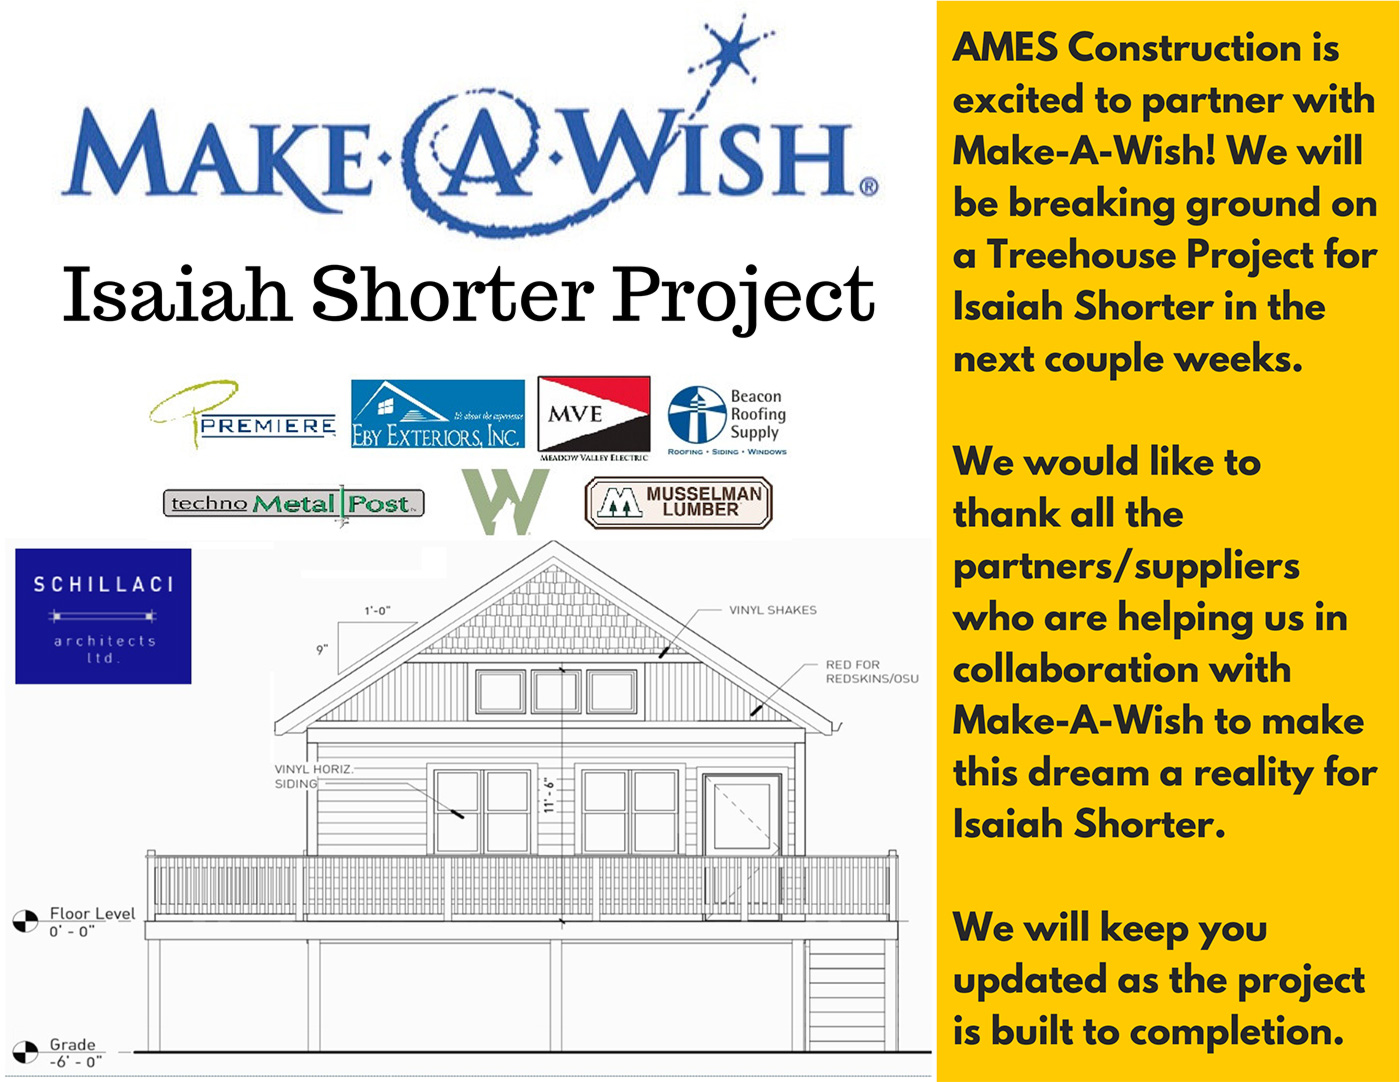 Make-A-Wish Treehouse Project - Ames Construction Inc. is proud to be a contributor to this project.